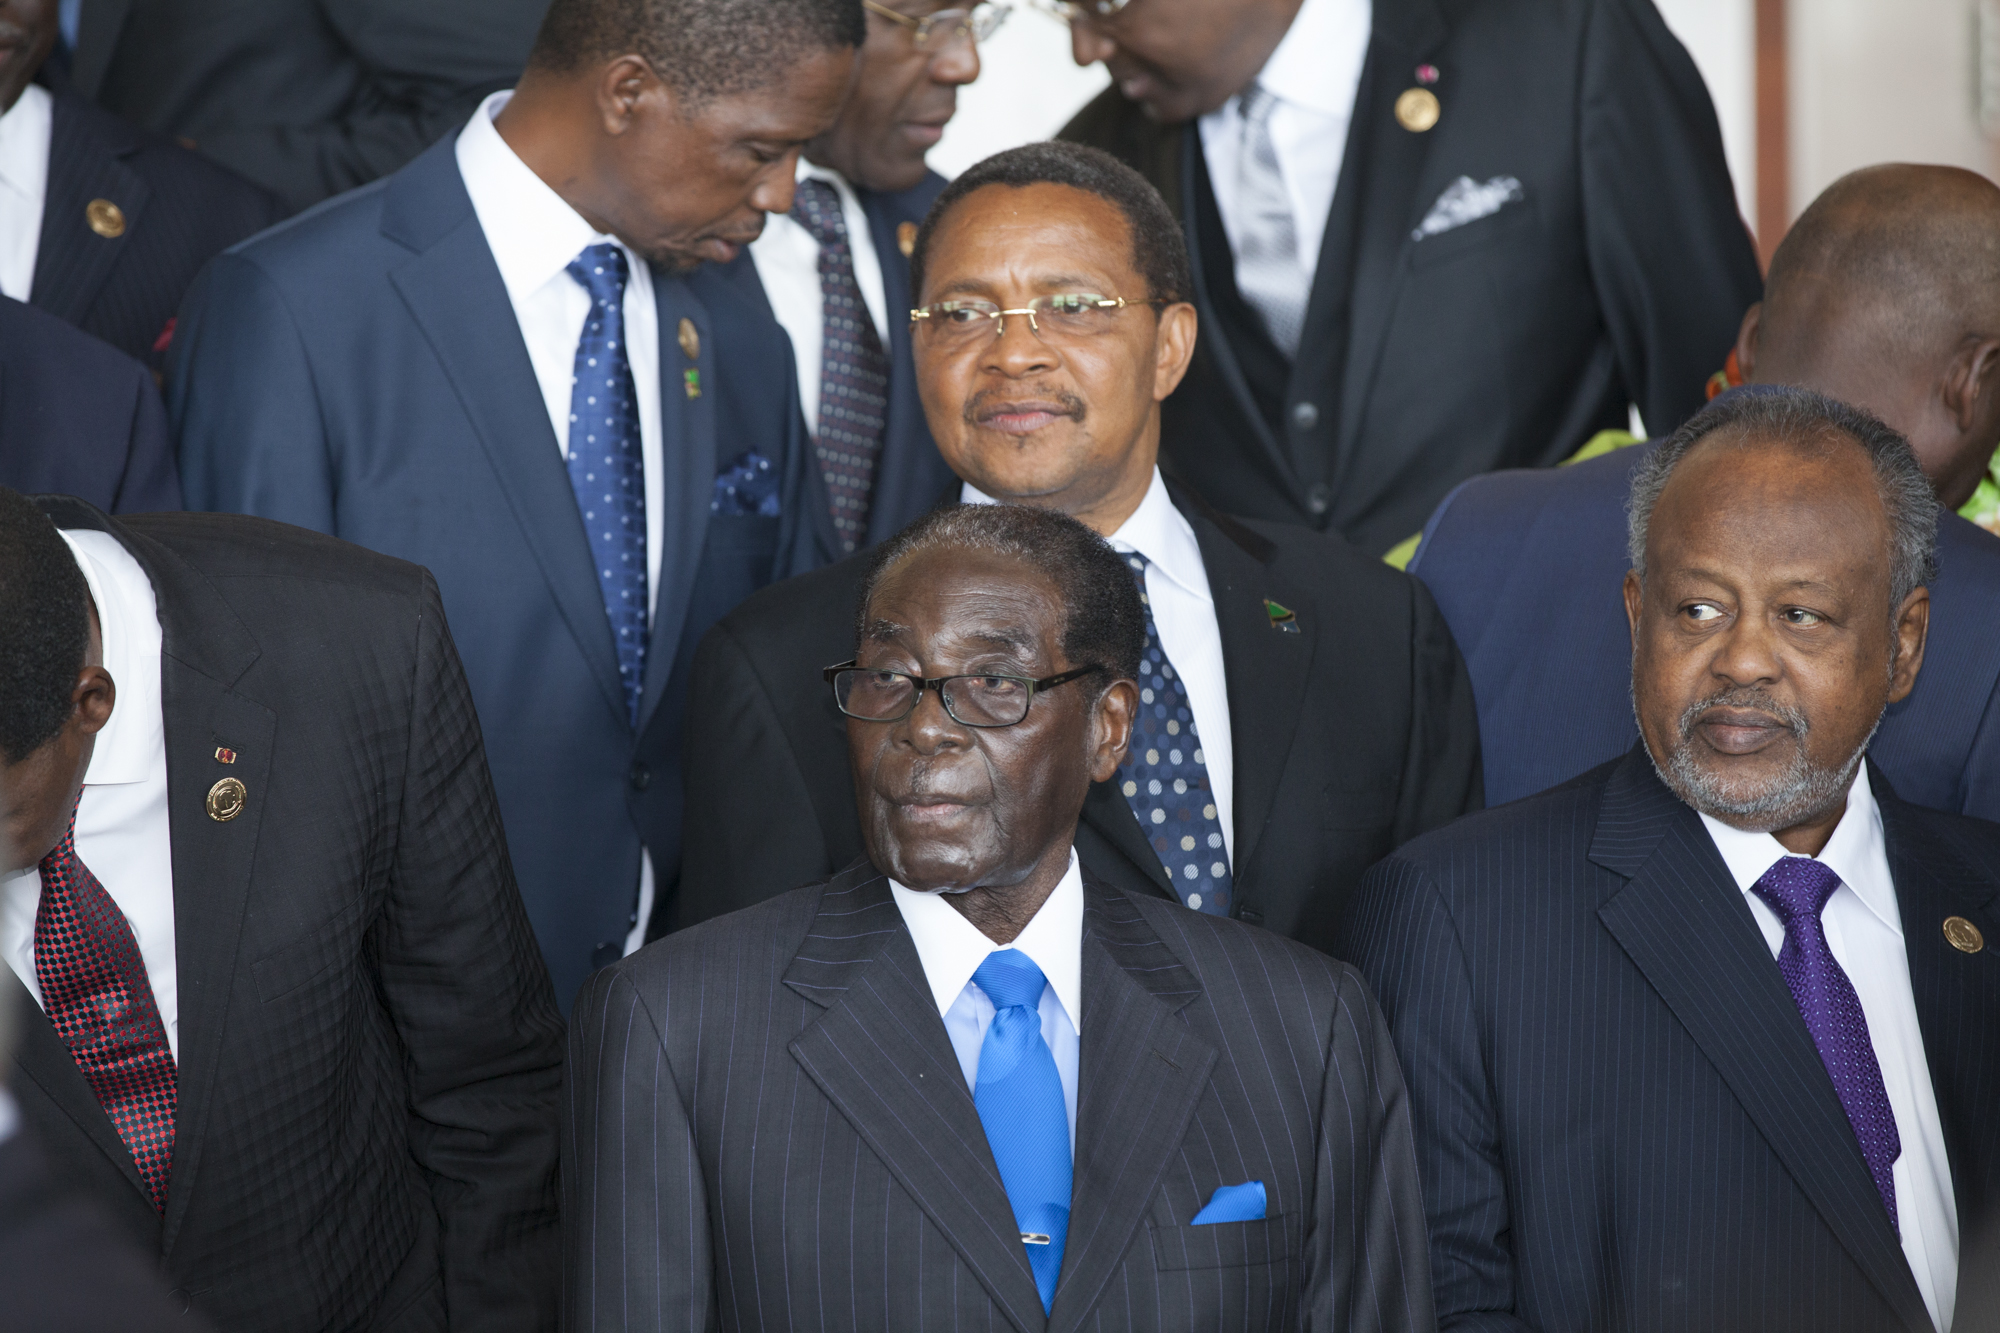 Robert Mugabe, President of Zimbabwe, is pictured at the opening ceremony of the 24th Heads of State meeting at the African Union in Addis Ababa 30 Jan 2015.